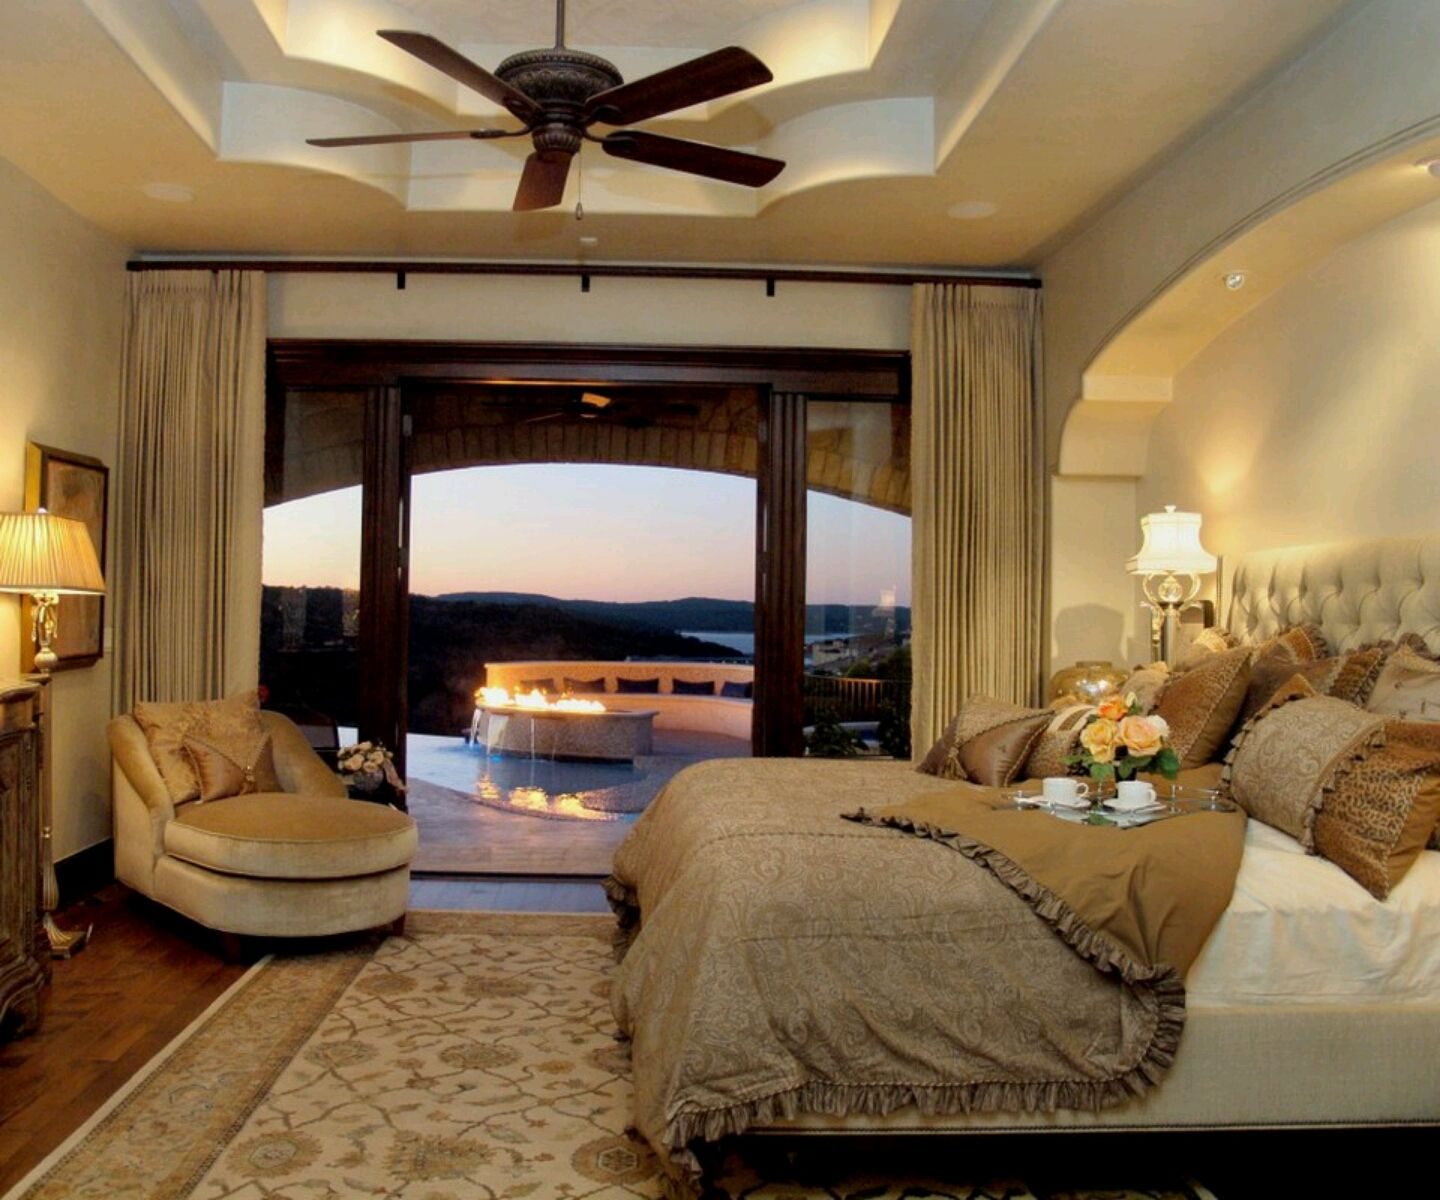 20 Bedroom Designs With Vaulted Ceilings: 20 Vaulted Ceiling Ideas To Steal From Rustic To